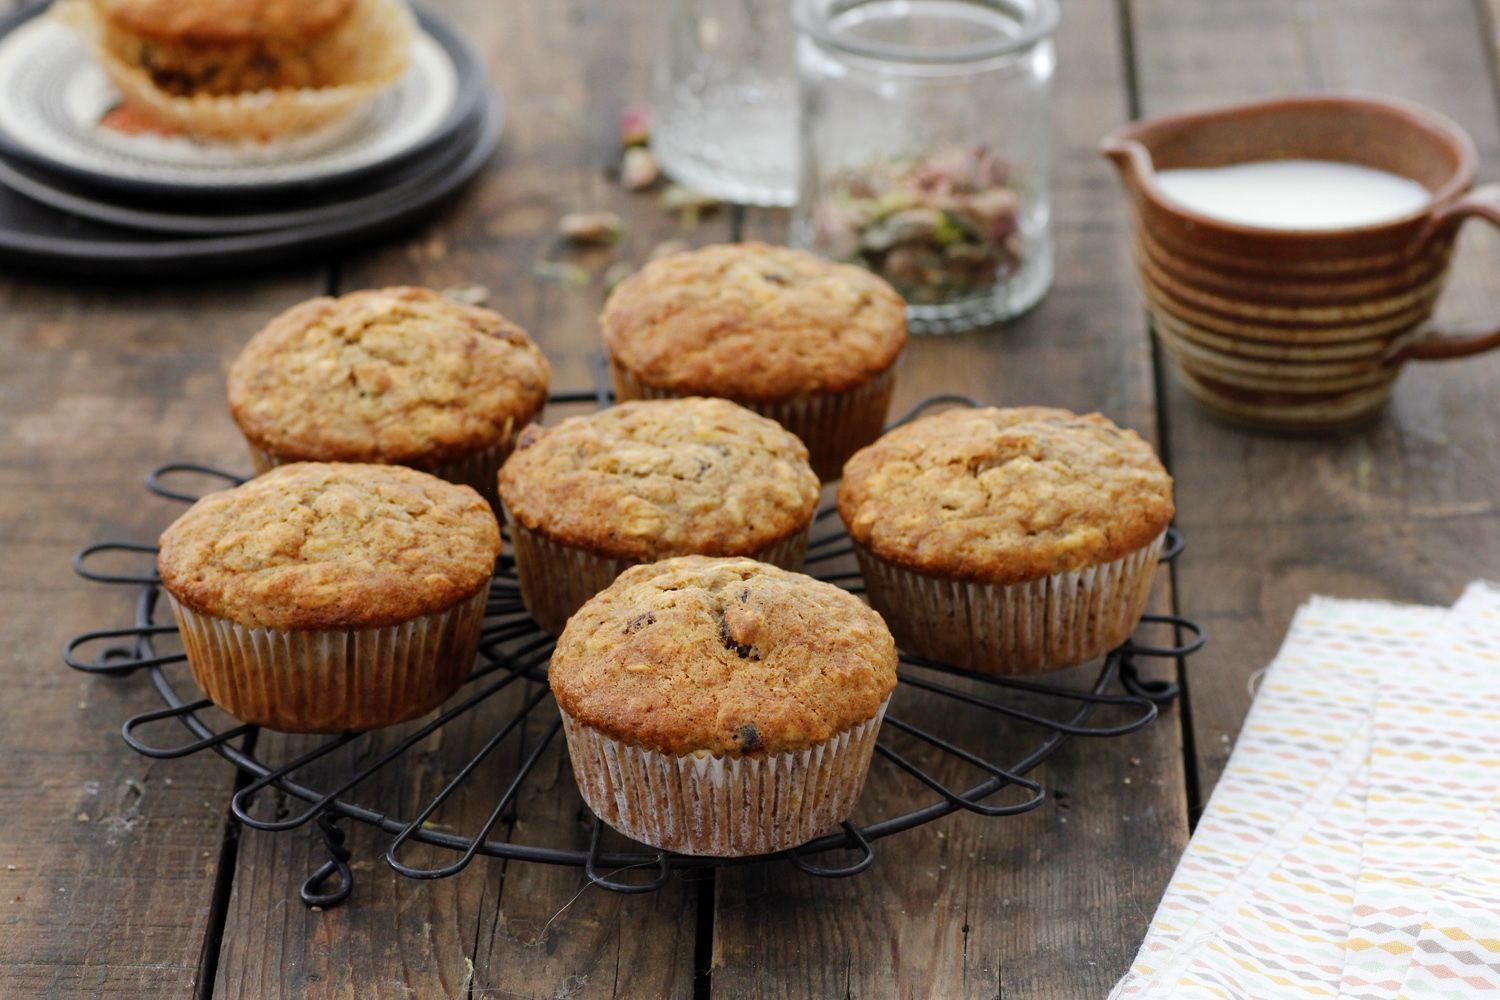 Whole Wheat Banana Muffins with Oats and Cranberries